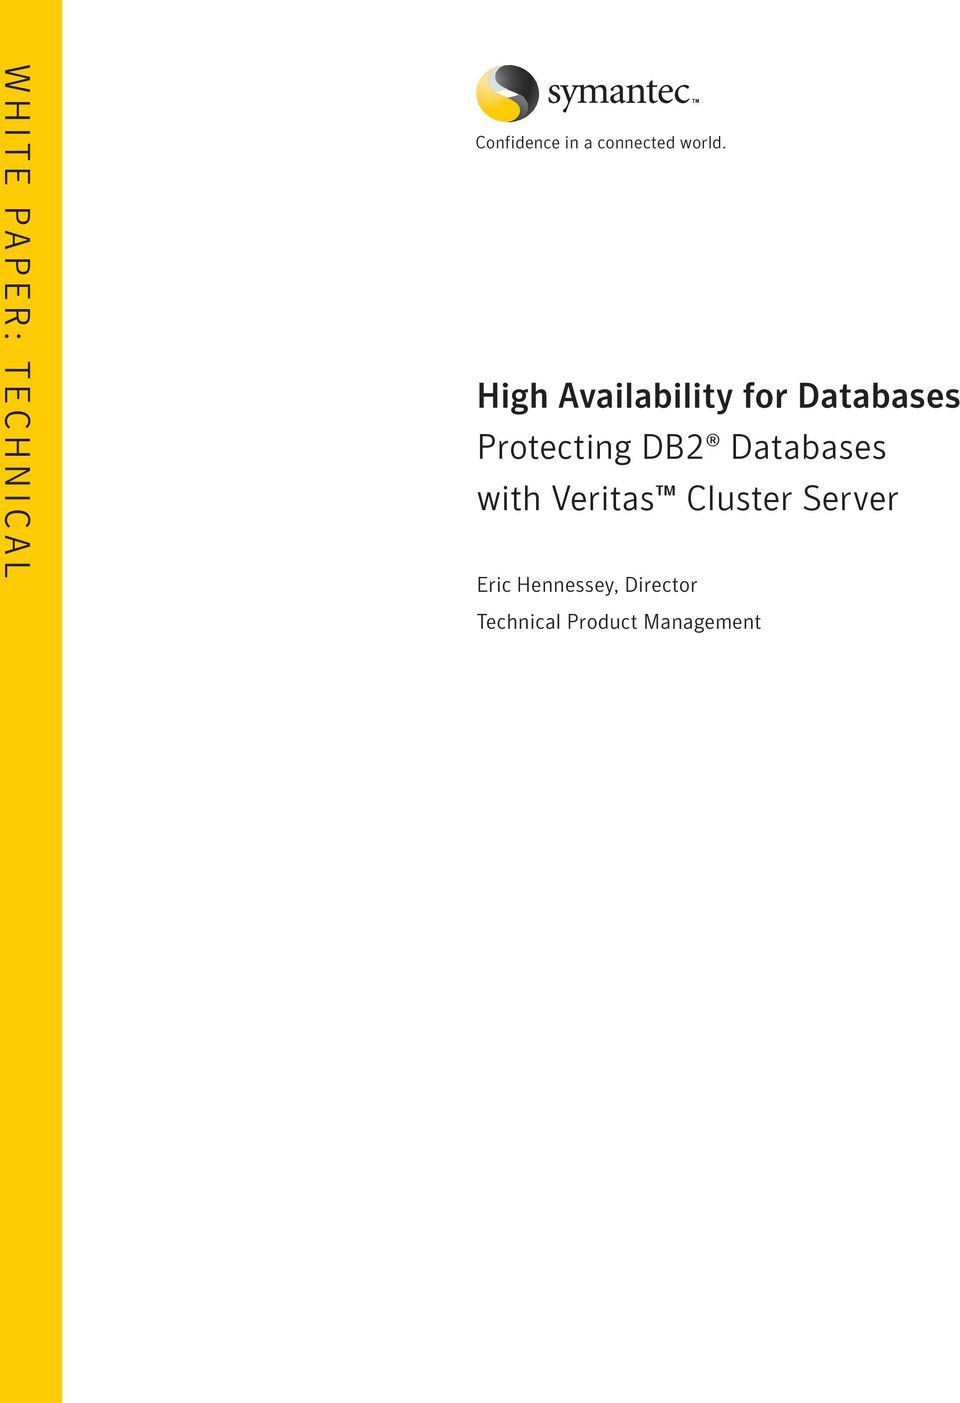 High Availability for Databases Protecting DB2